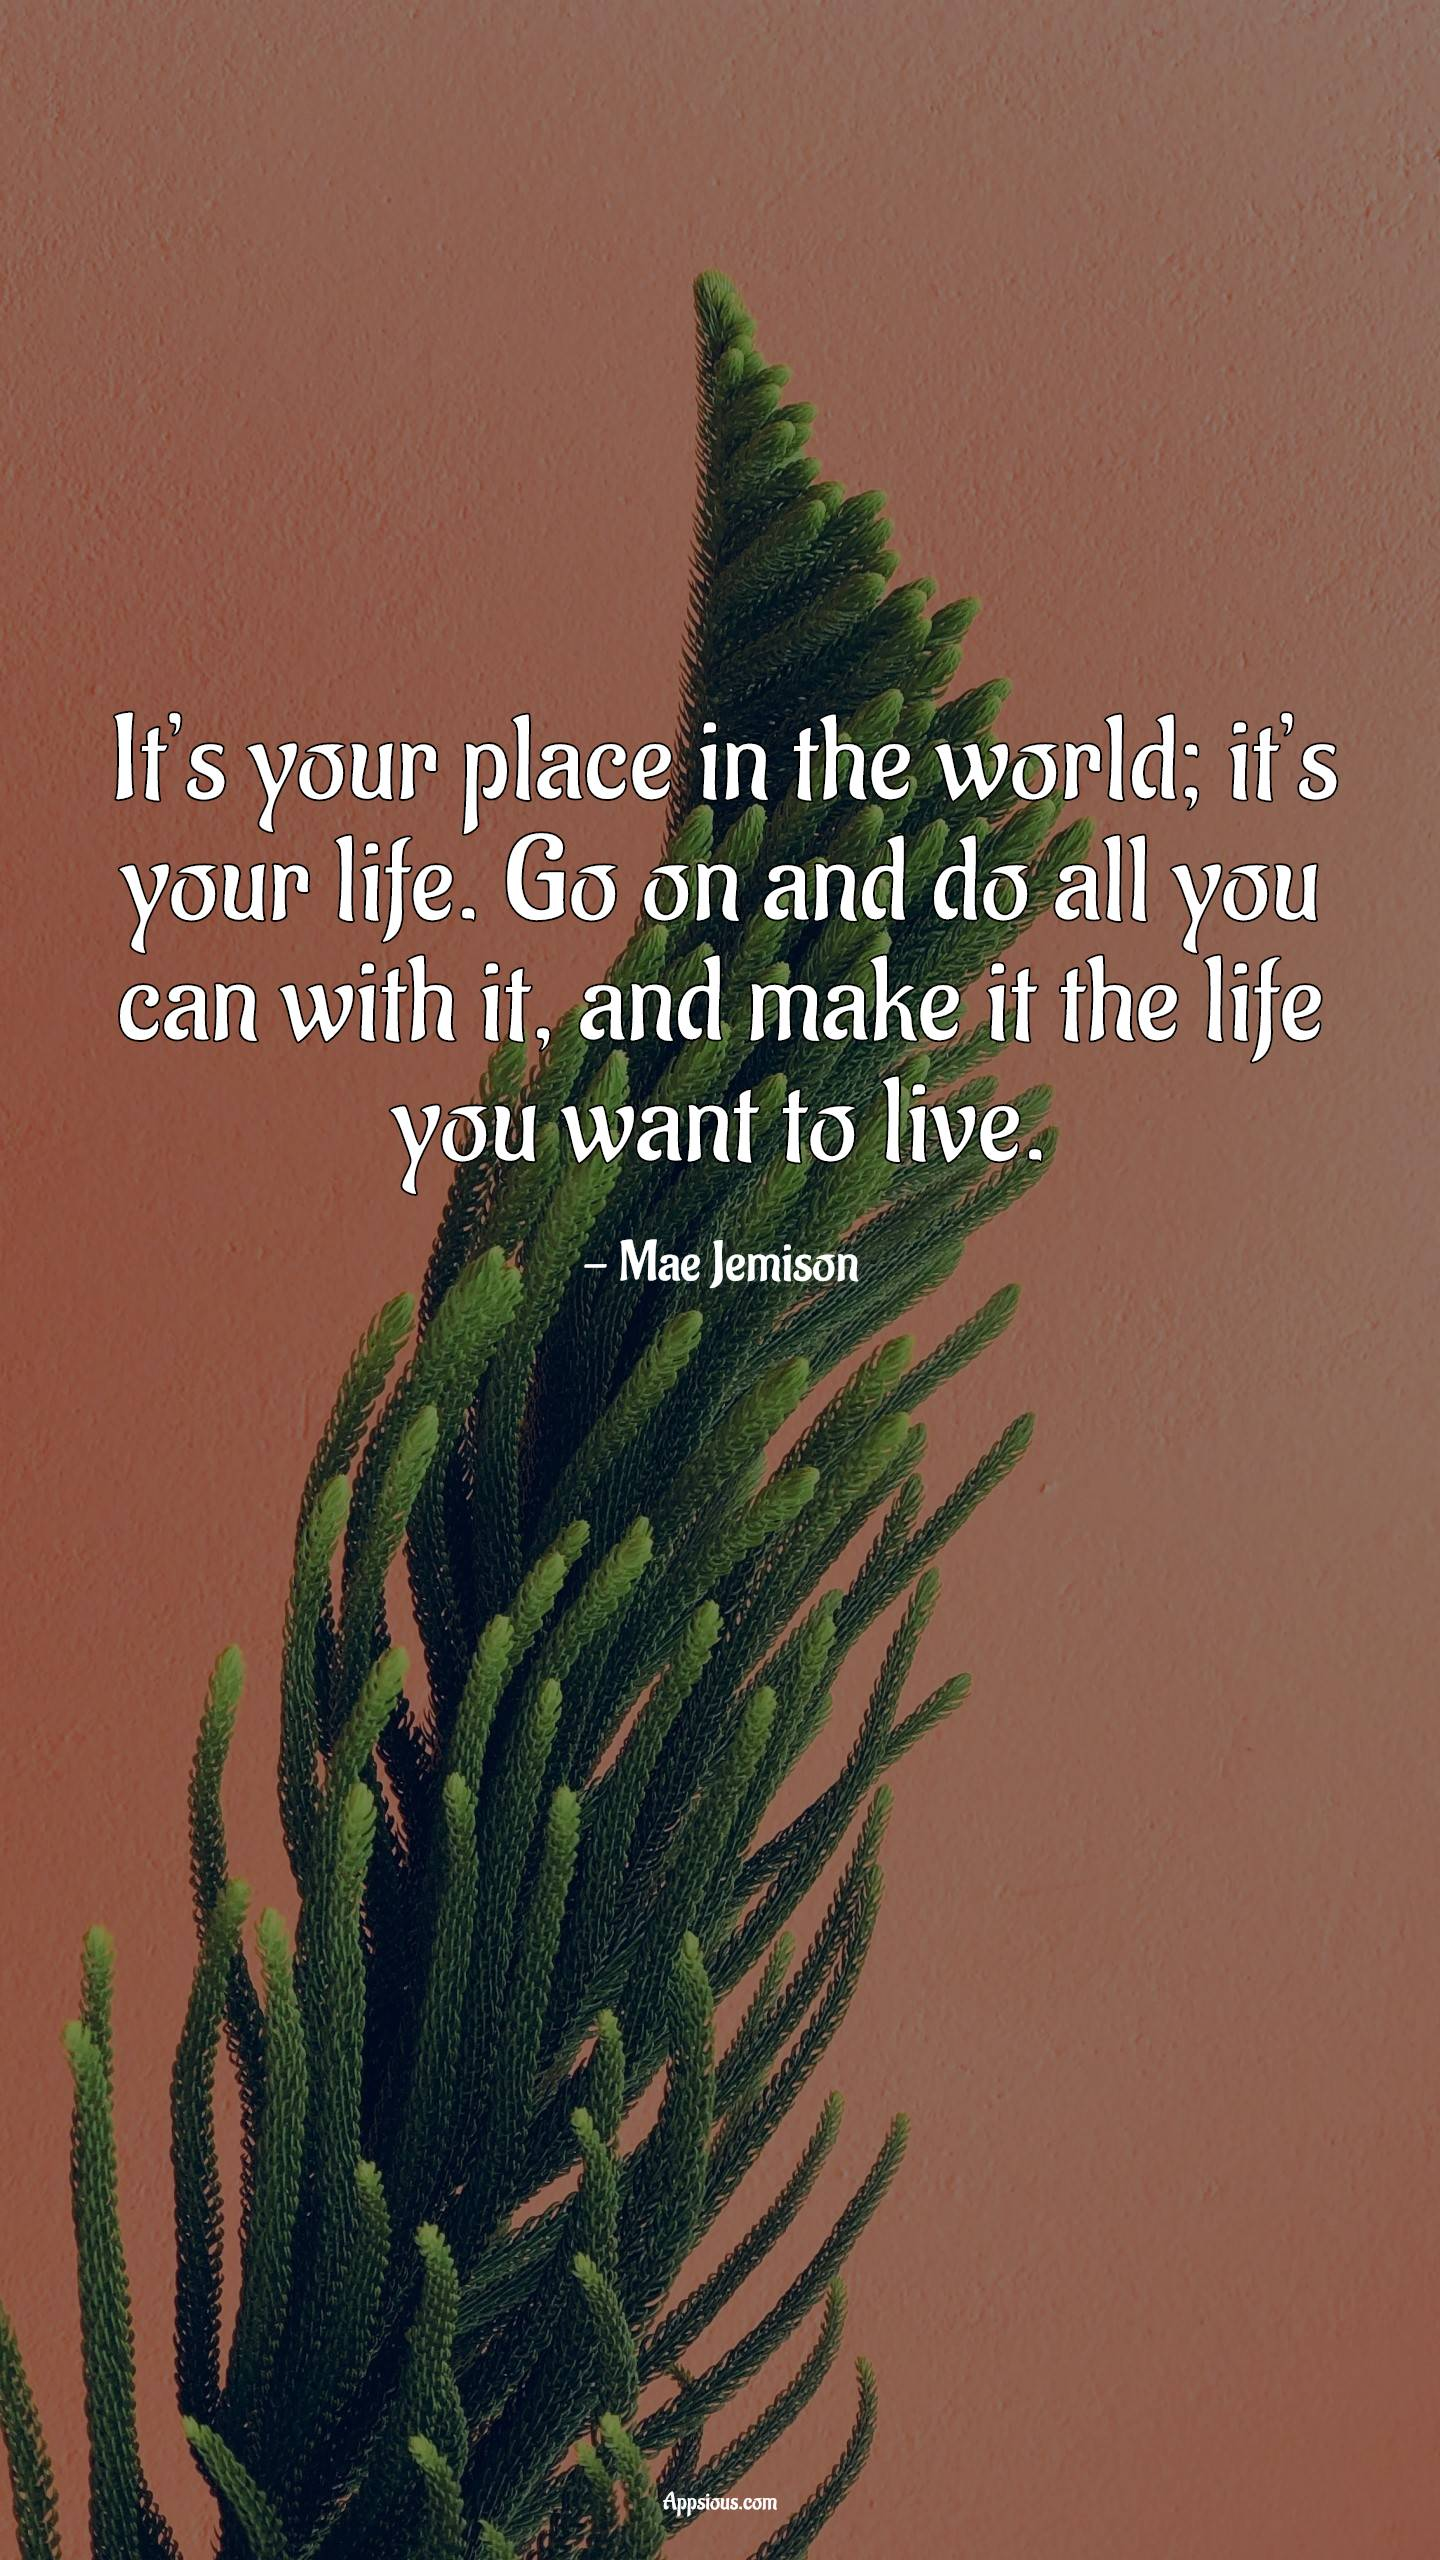 It's your place in the world; it's your life. Go on and do all you can with it, and make it the life you want to live.